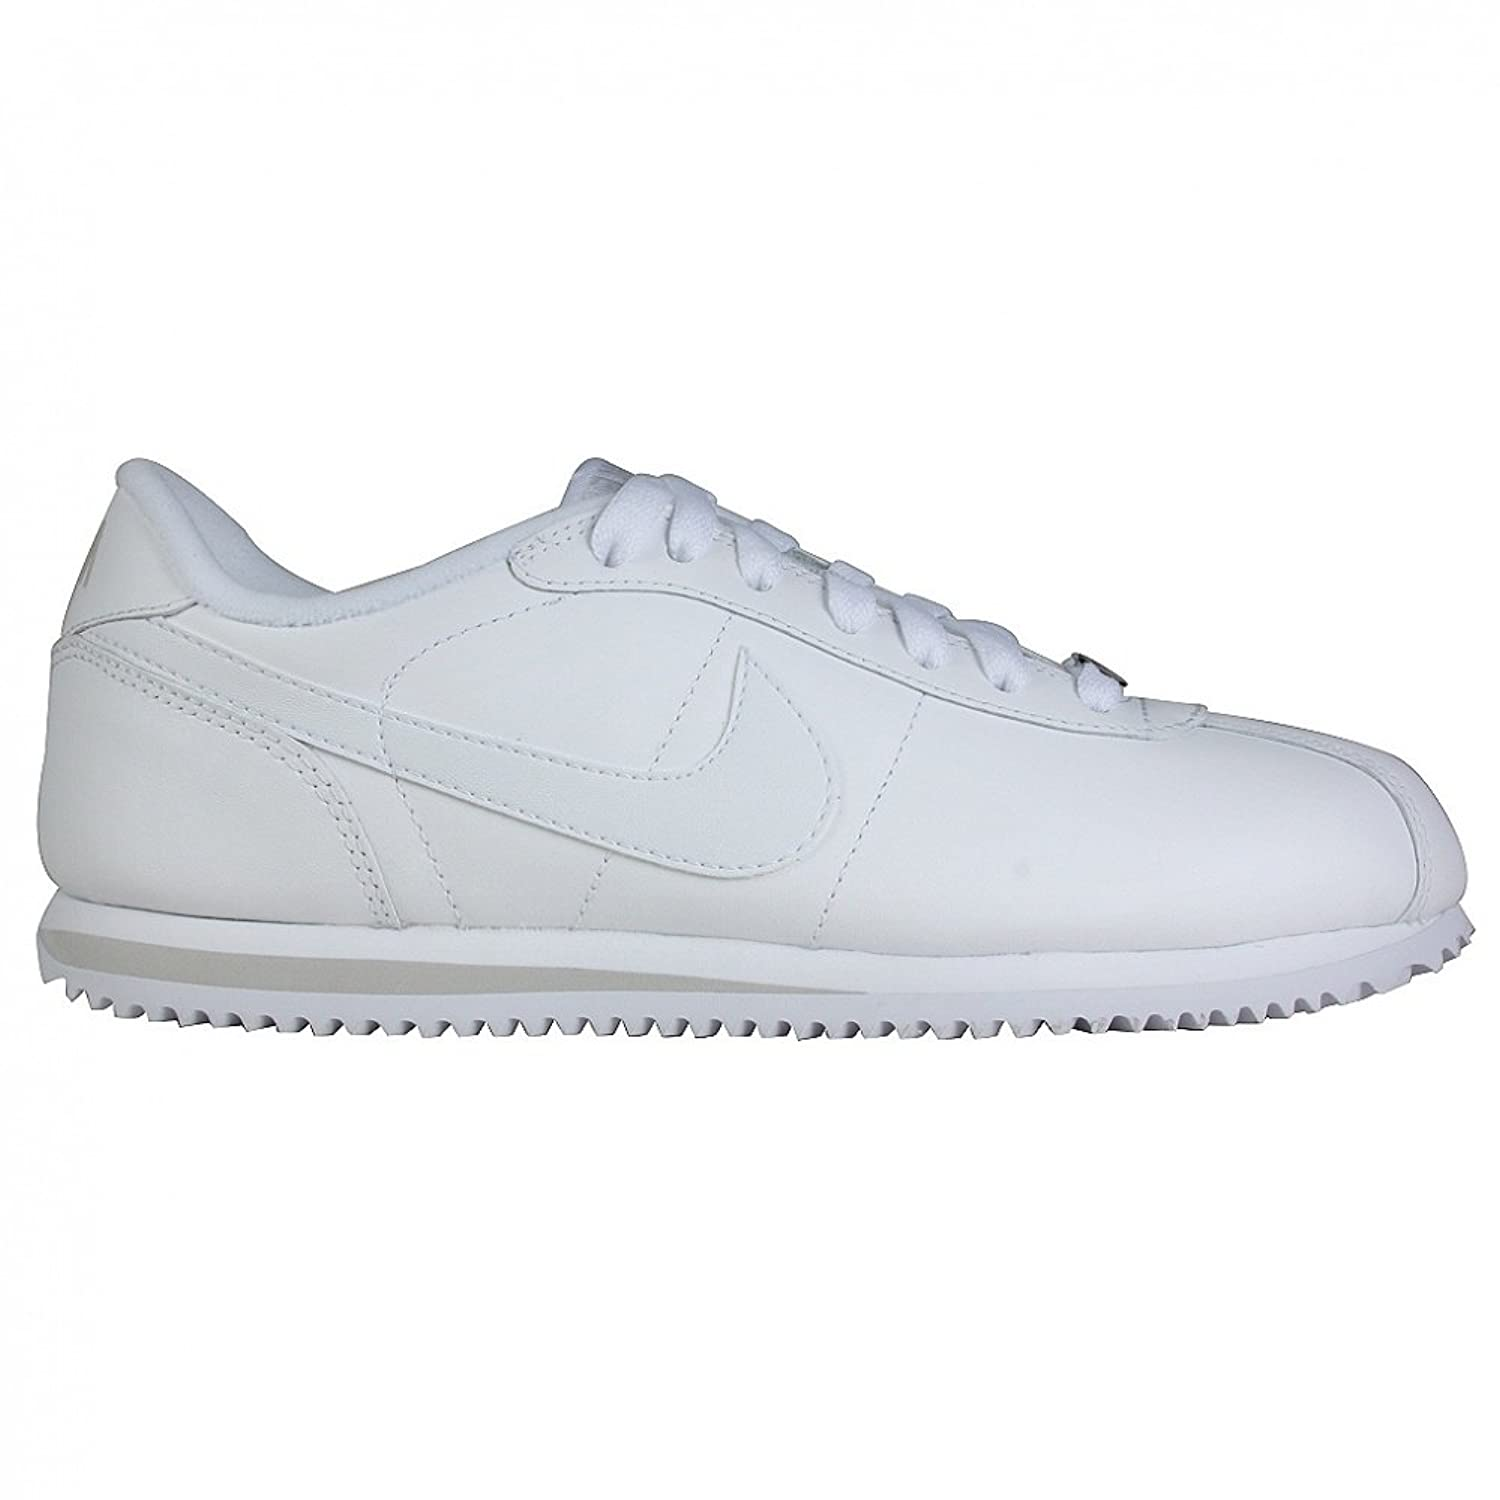 3229ea42cfccb all white nike cortez shoes on sale > OFF44% Discounts